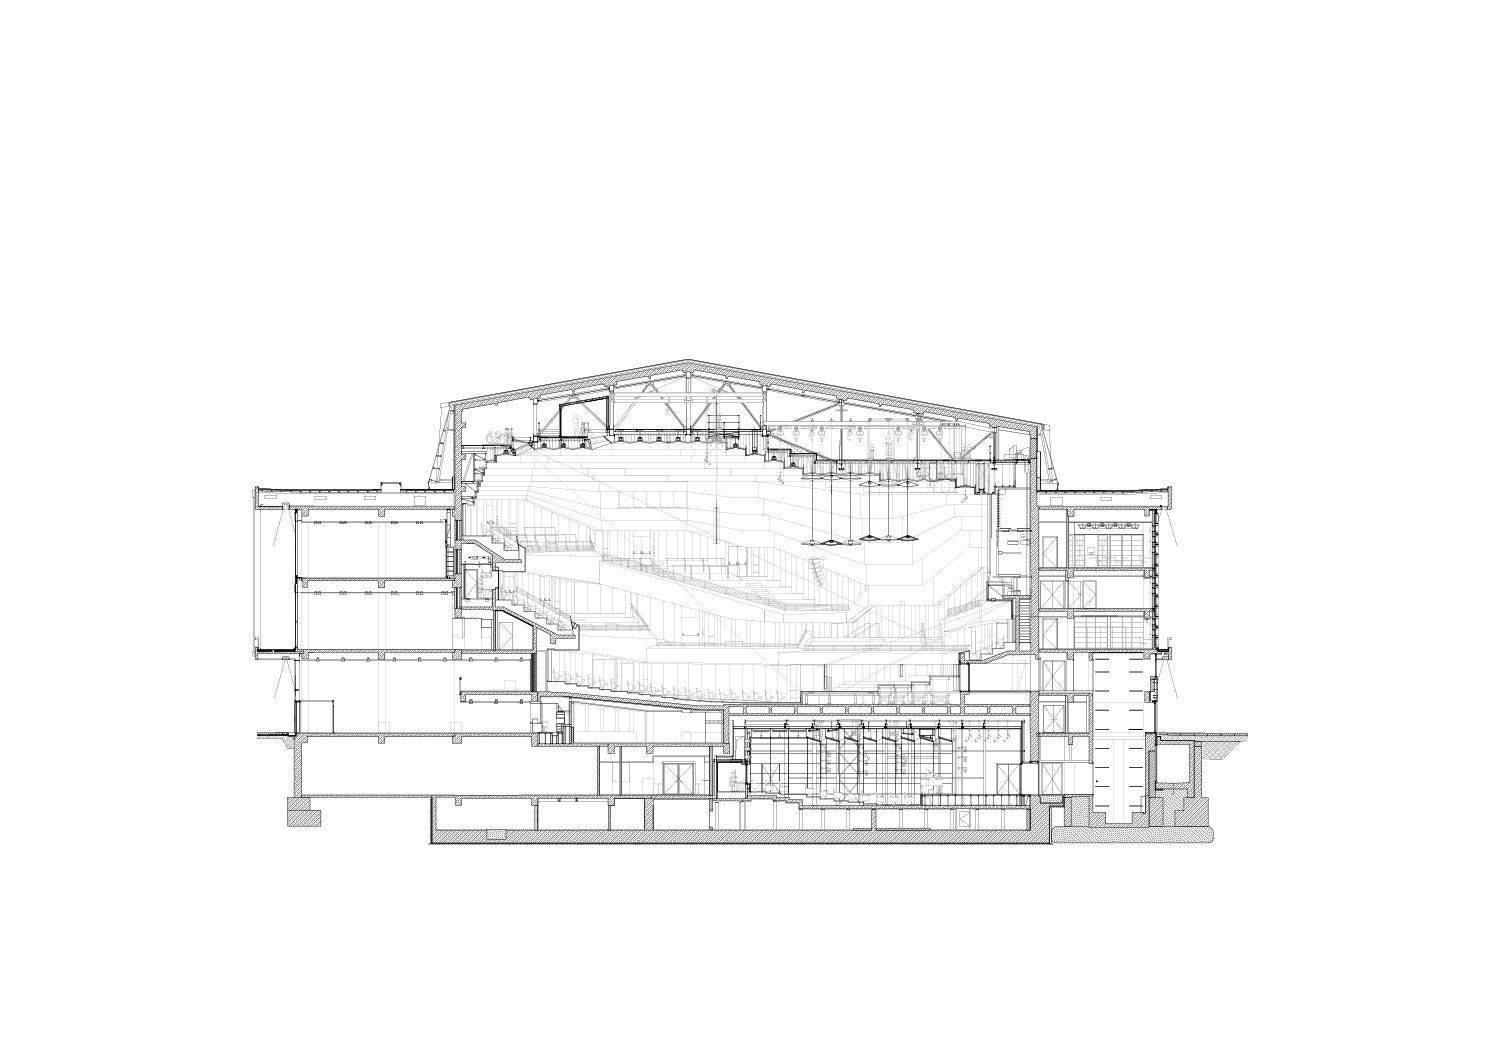 Cross-section through concert hall gmp von Gerkan, Marg and Partners Architects}